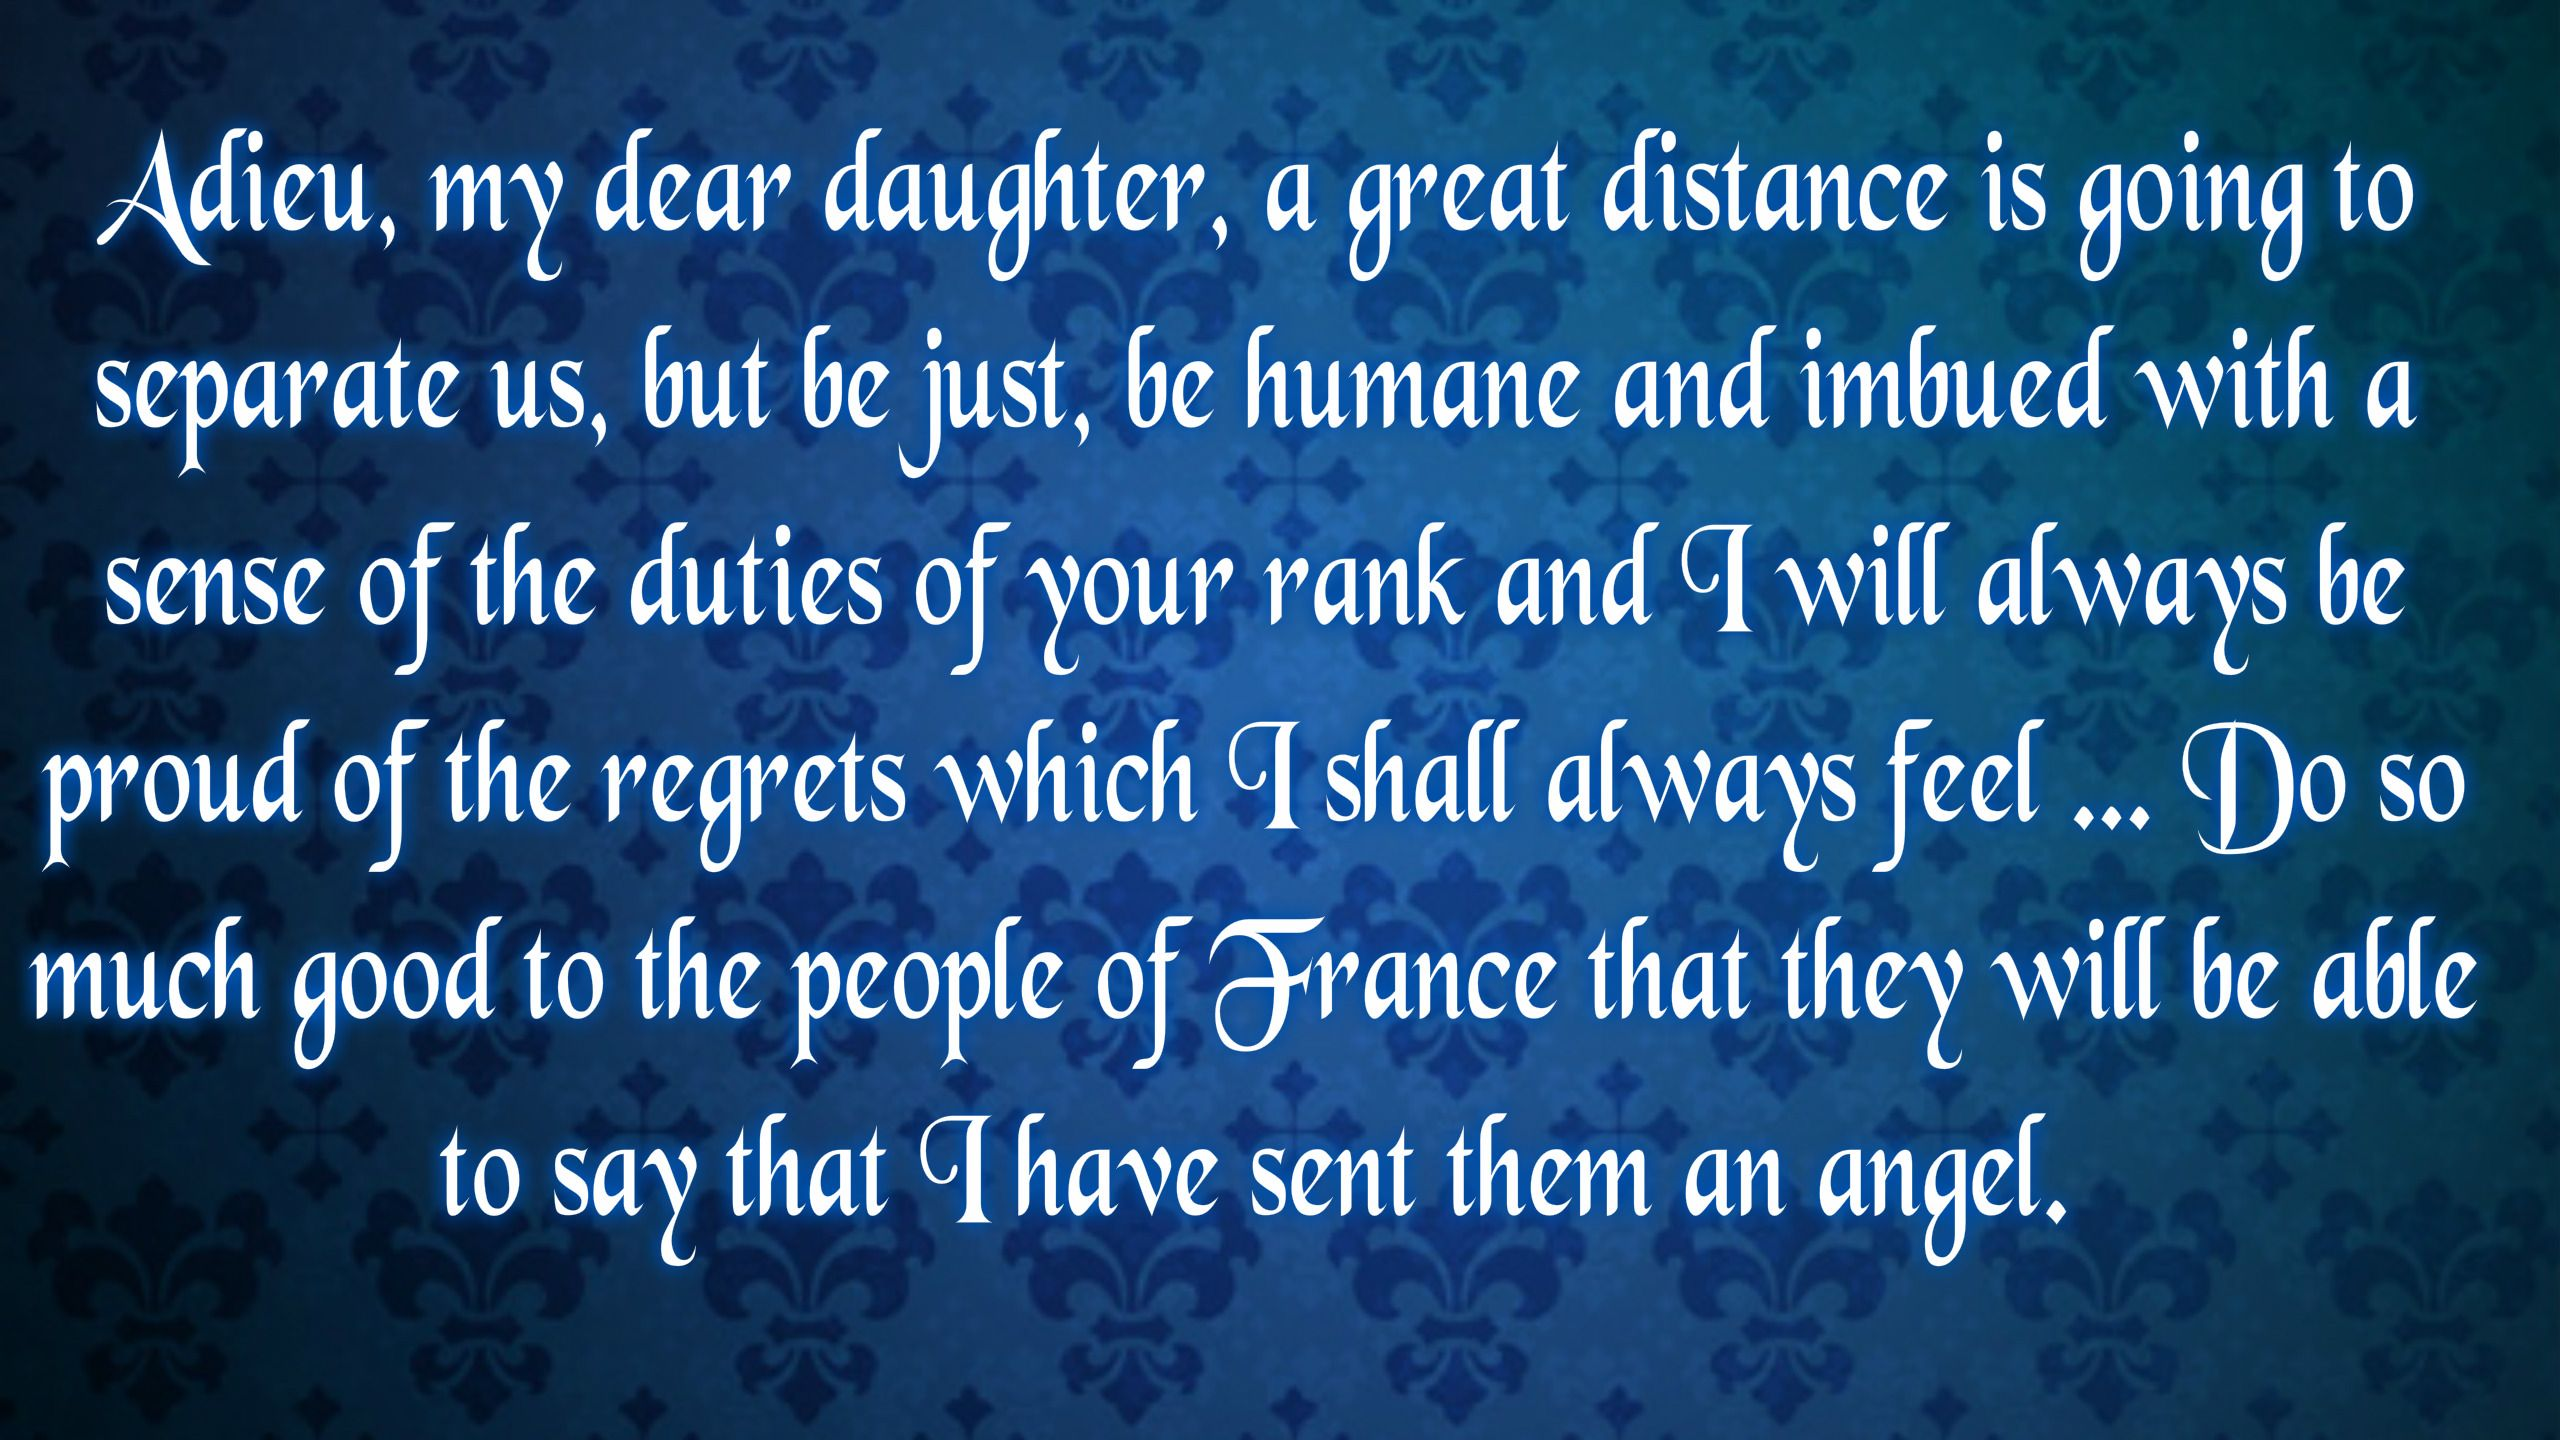 The last thing marie antoinetteus mother said to her before she left